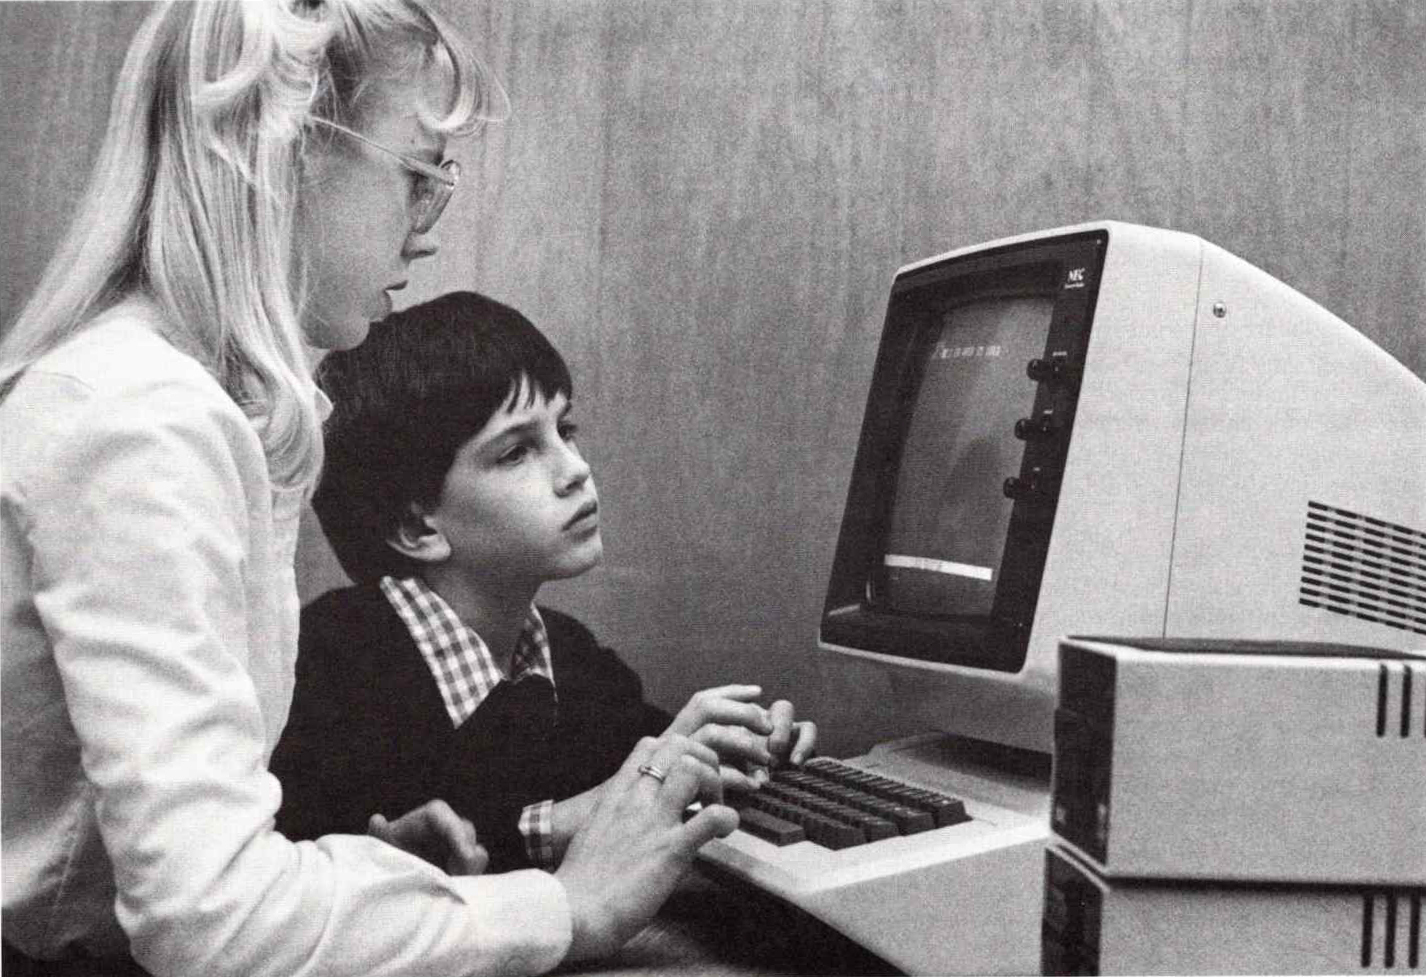 a black and white photo from 1983 shows a male elementary school student sitting at a computer with a female teacher who is using the keyboard